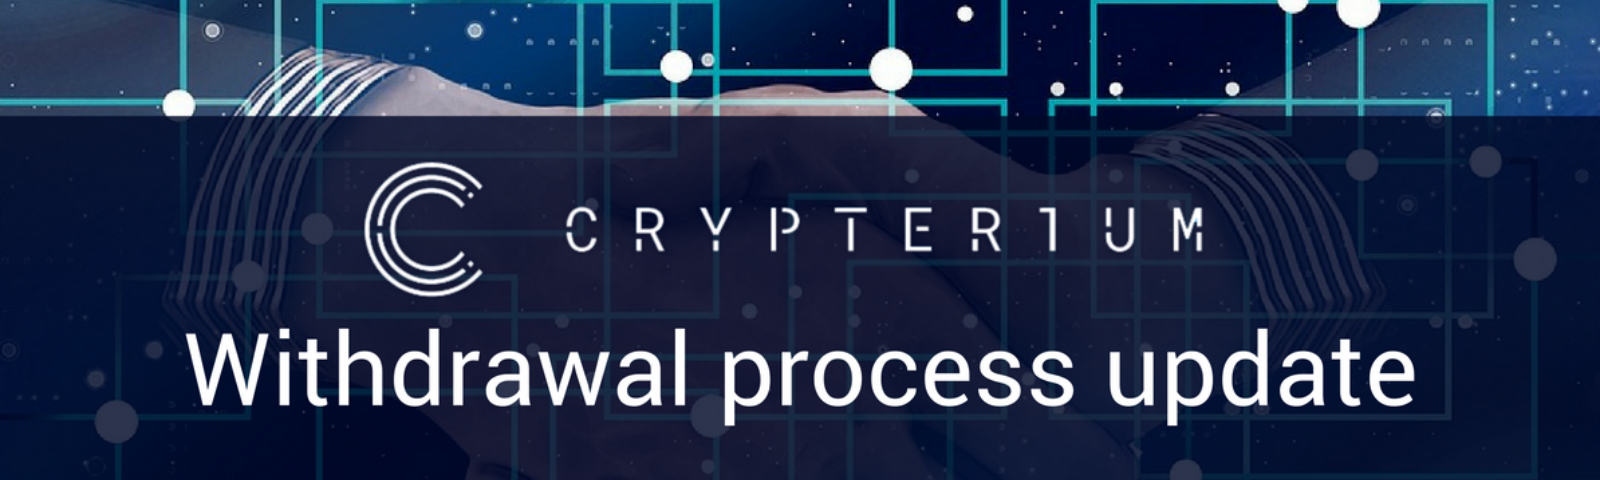 Crypterium token withdrawal update